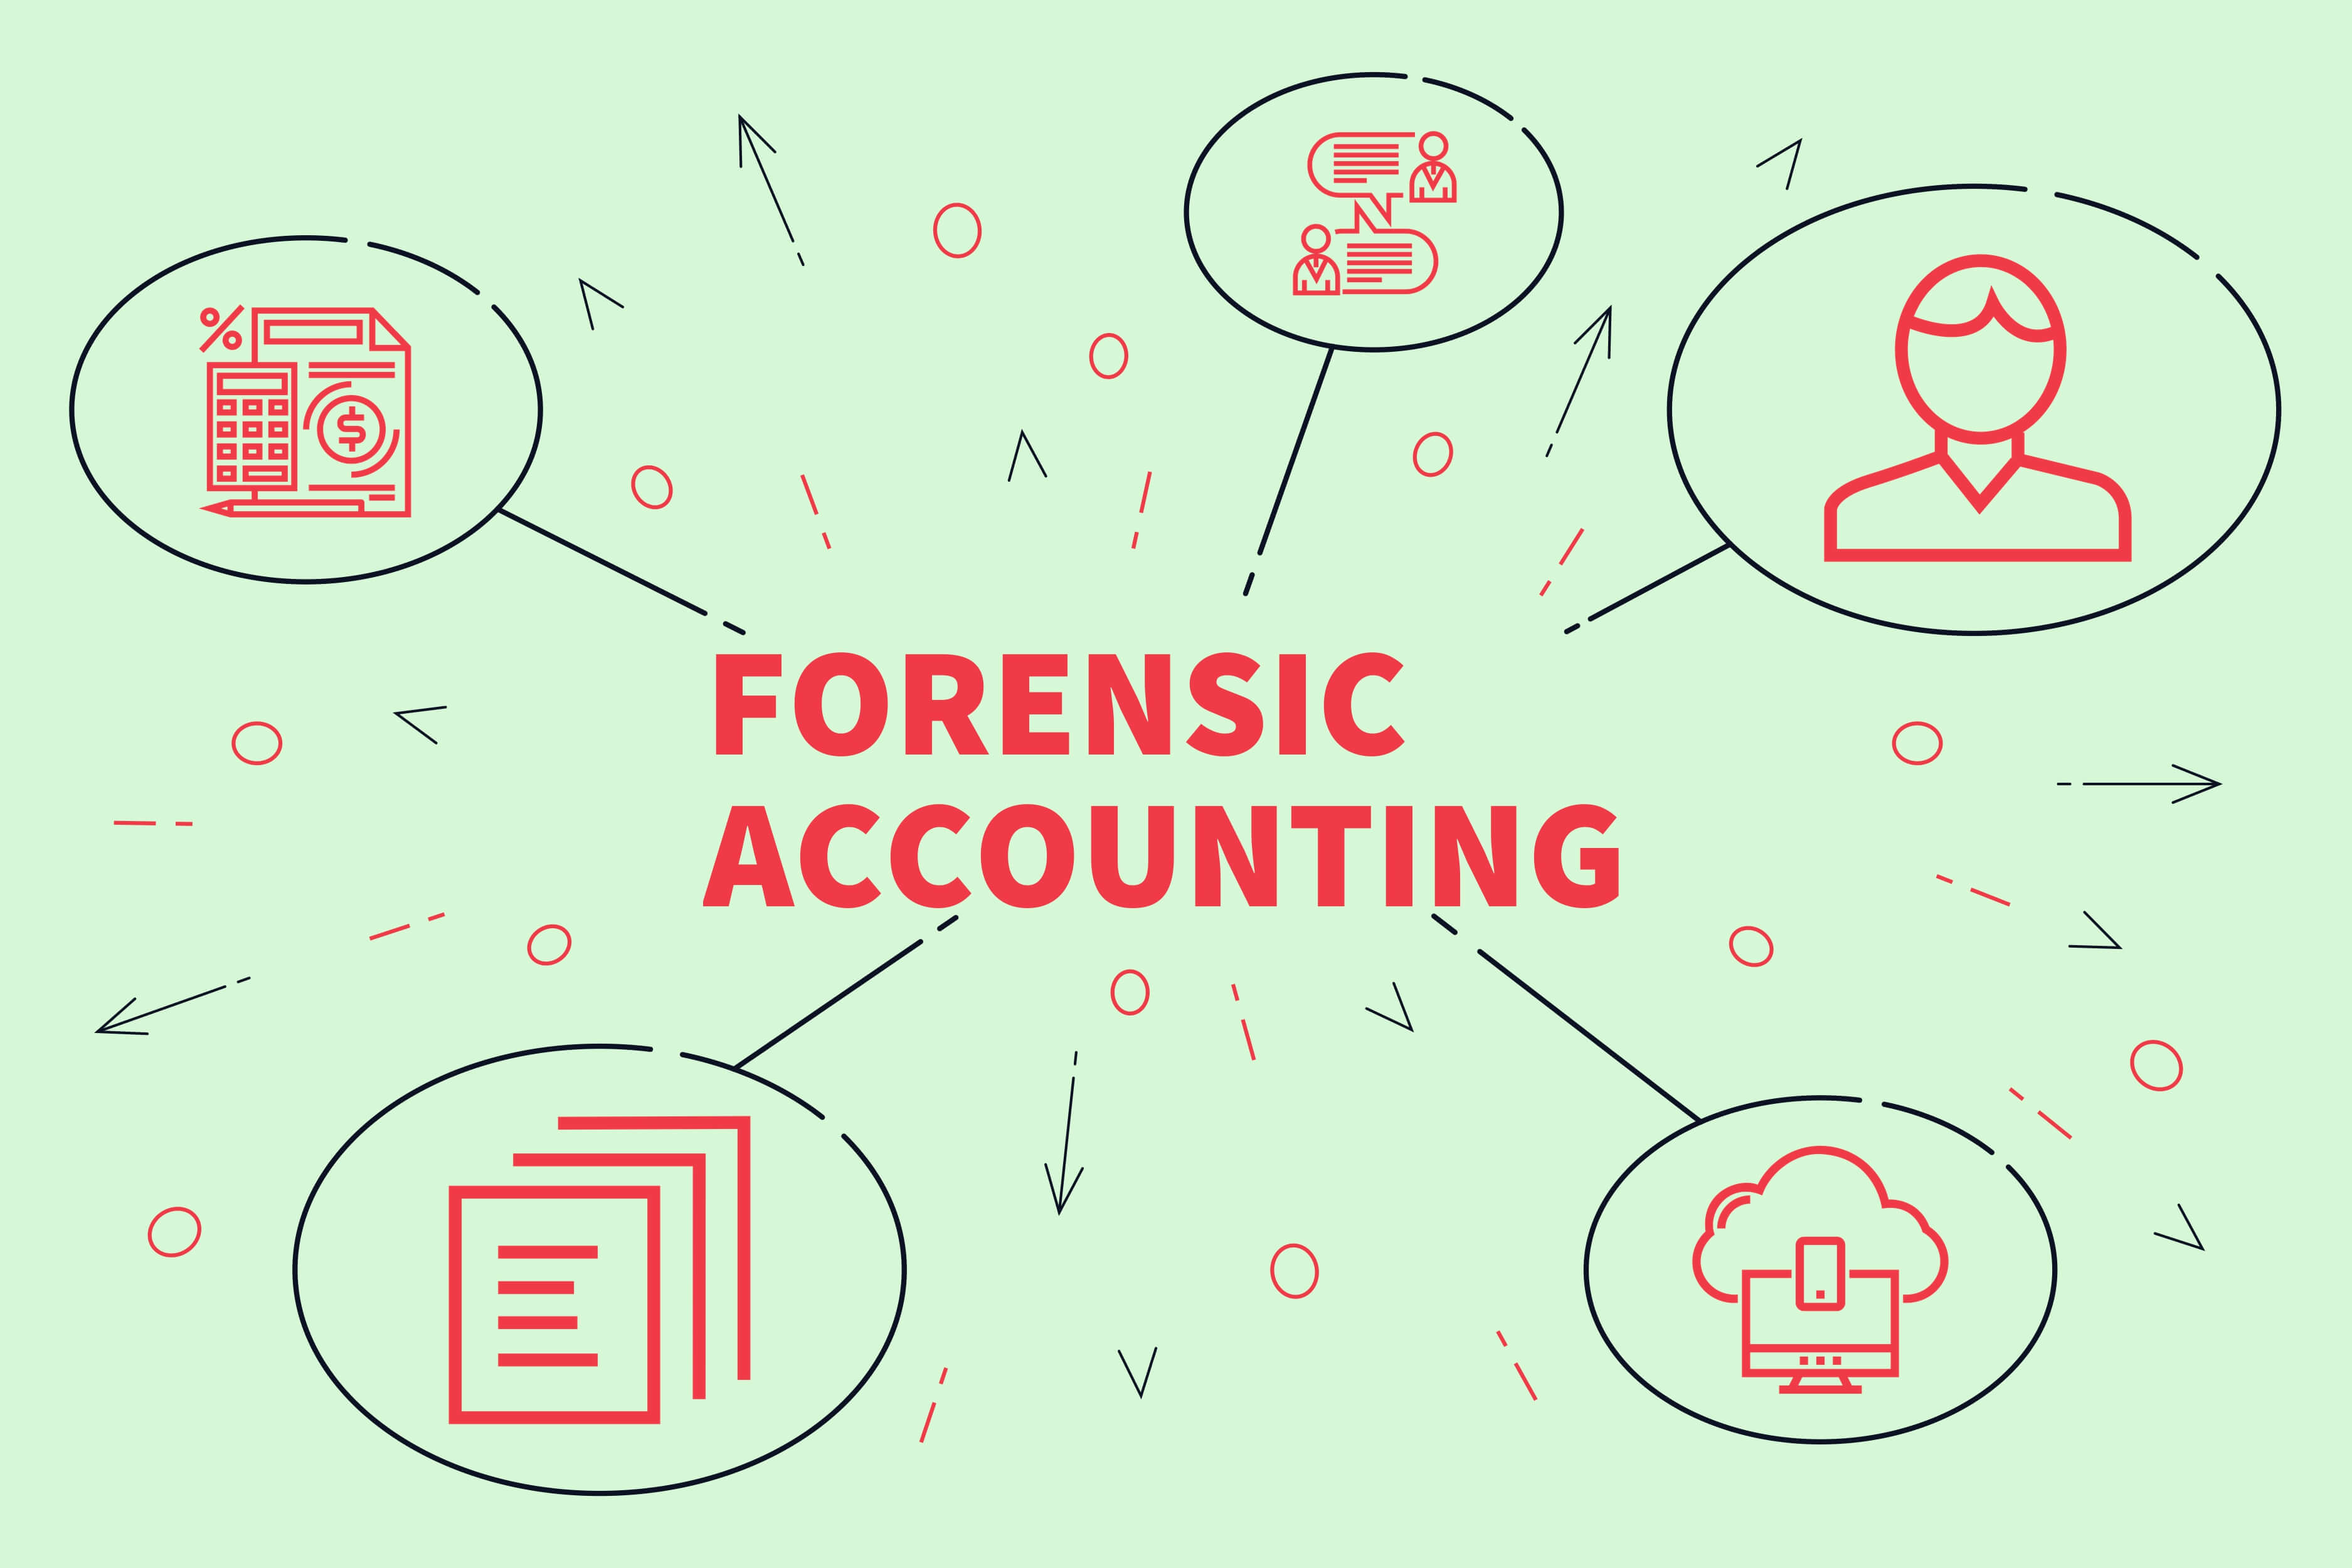 730 Evaluation in forensic accountant